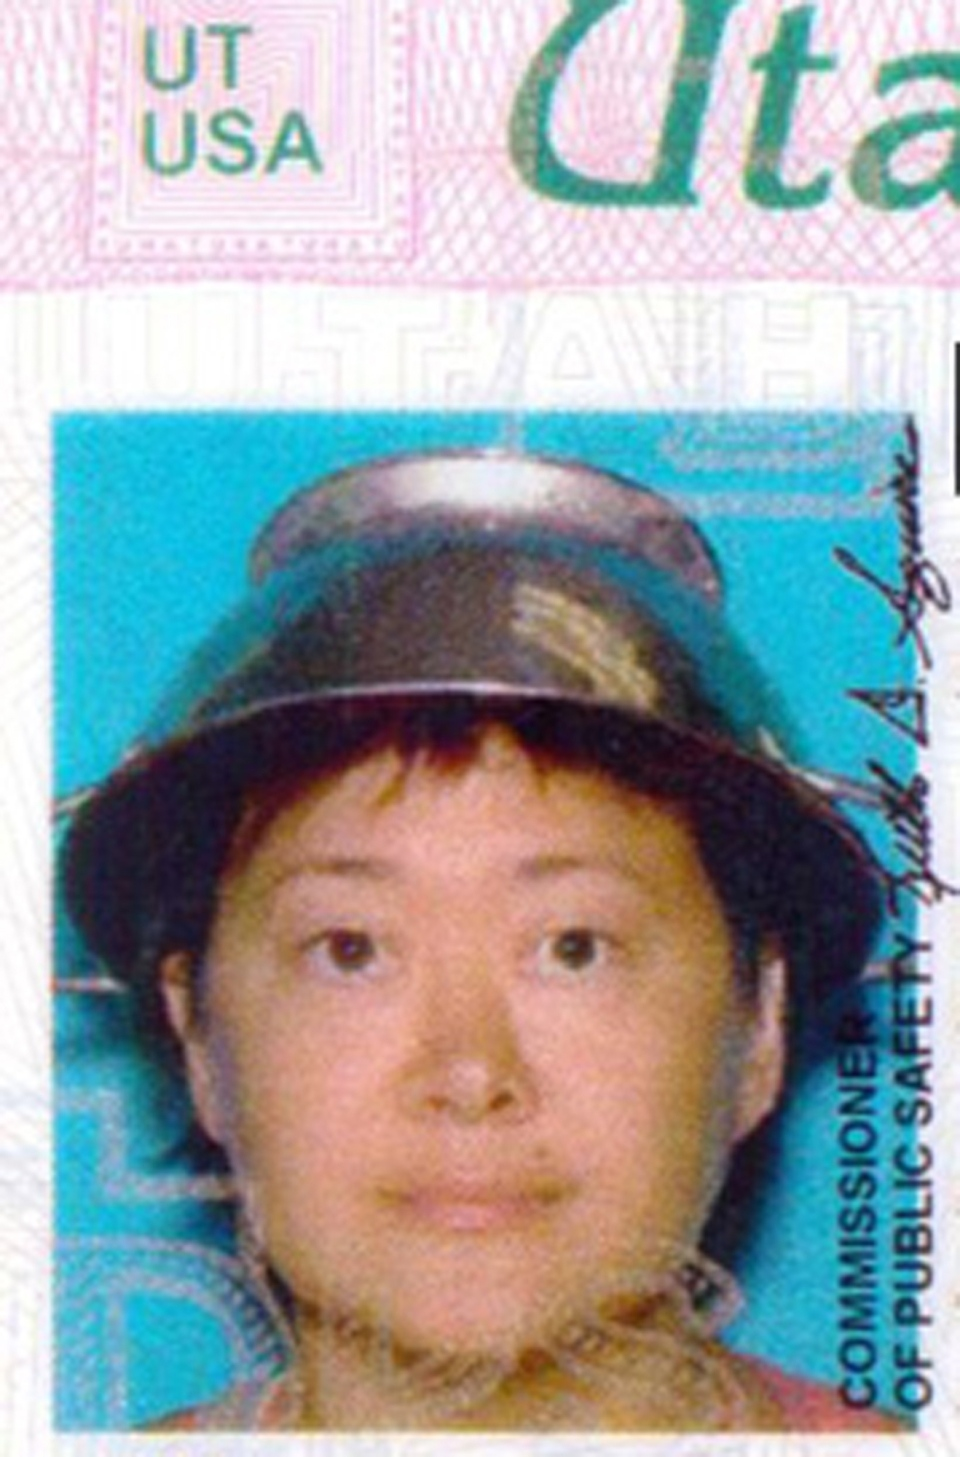 Asia Lemmon, whose legal name appears on her driver's licence as Jessica Steinhauser, is shown wearing a metal colander on her head on her Utah driver's license in this undated photo. (AP Photo/Utah Department of Motor Vehicles via The Spectrum)